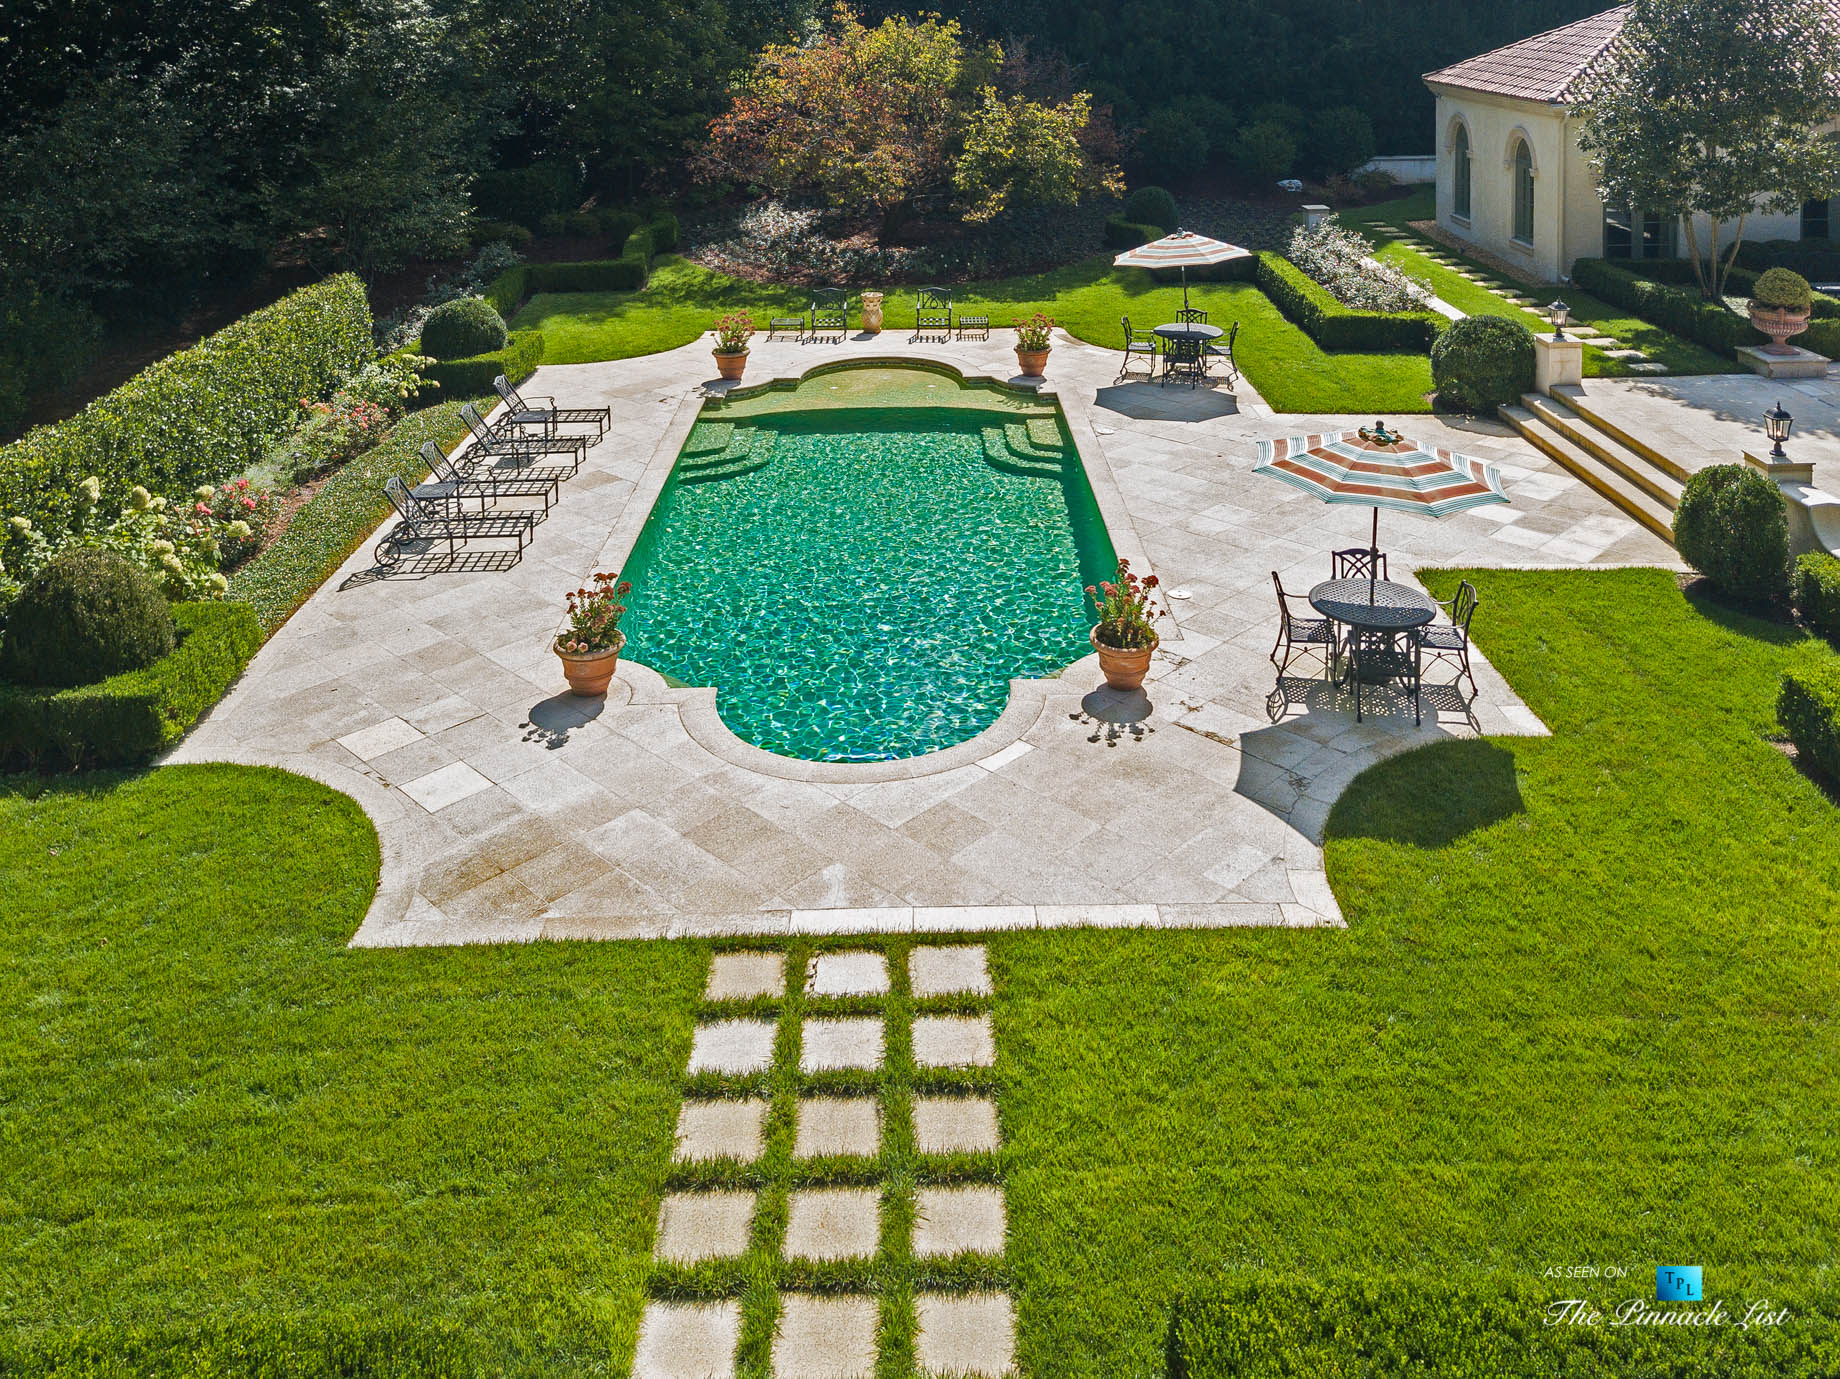 439 Blackland Rd NW, Atlanta, GA, USA - Luxurious Property Pool - Luxury Real Estate - Tuxedo Park Mediterranean Mansion Home